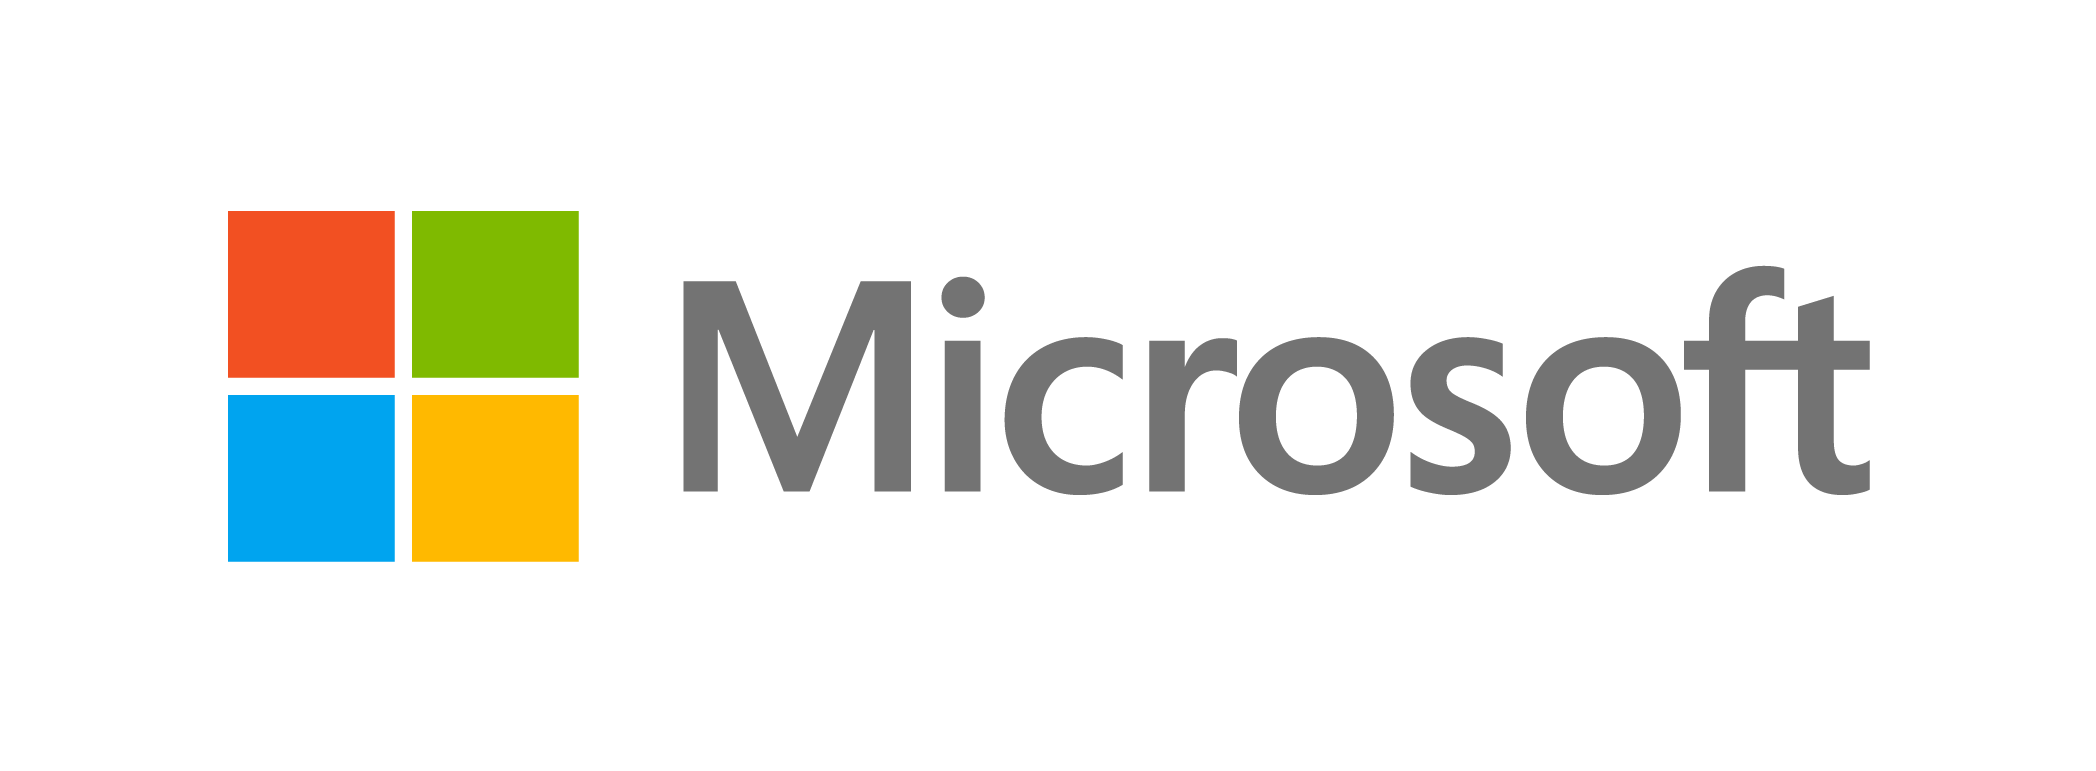 Microsoft Cloud Partner | Office 365 Partner